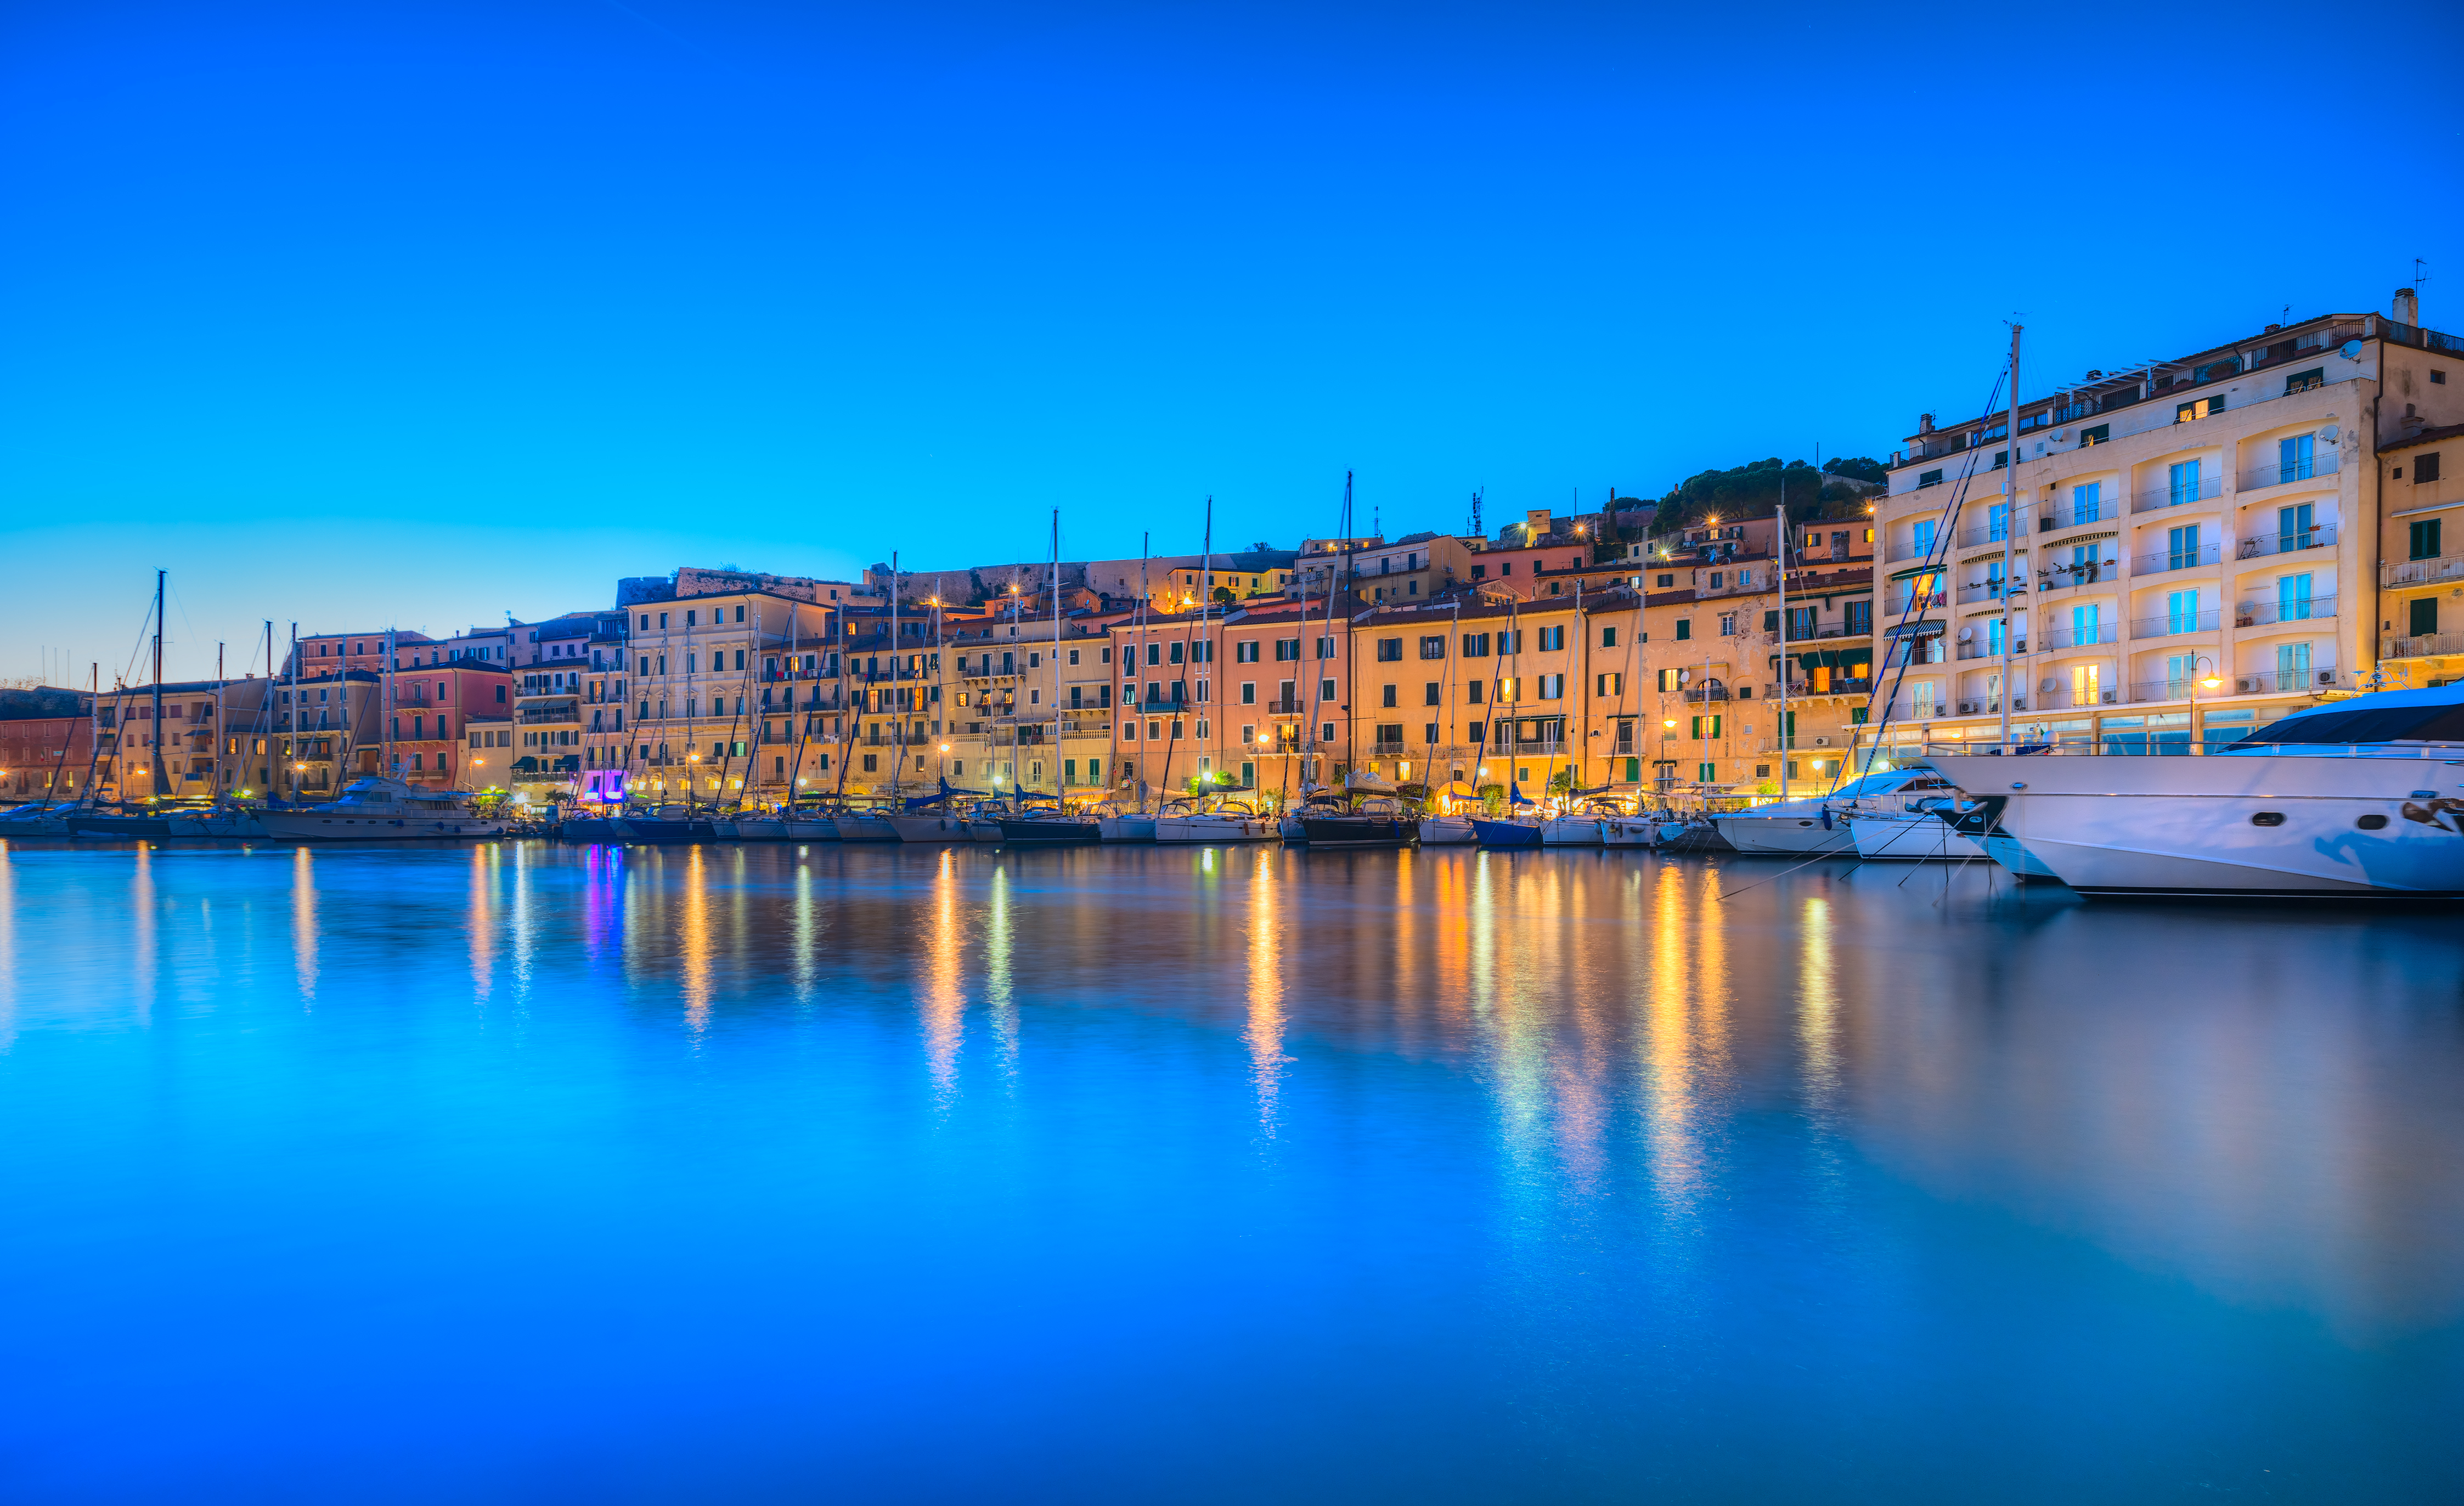 Panoramic view of Portoferraio town at d